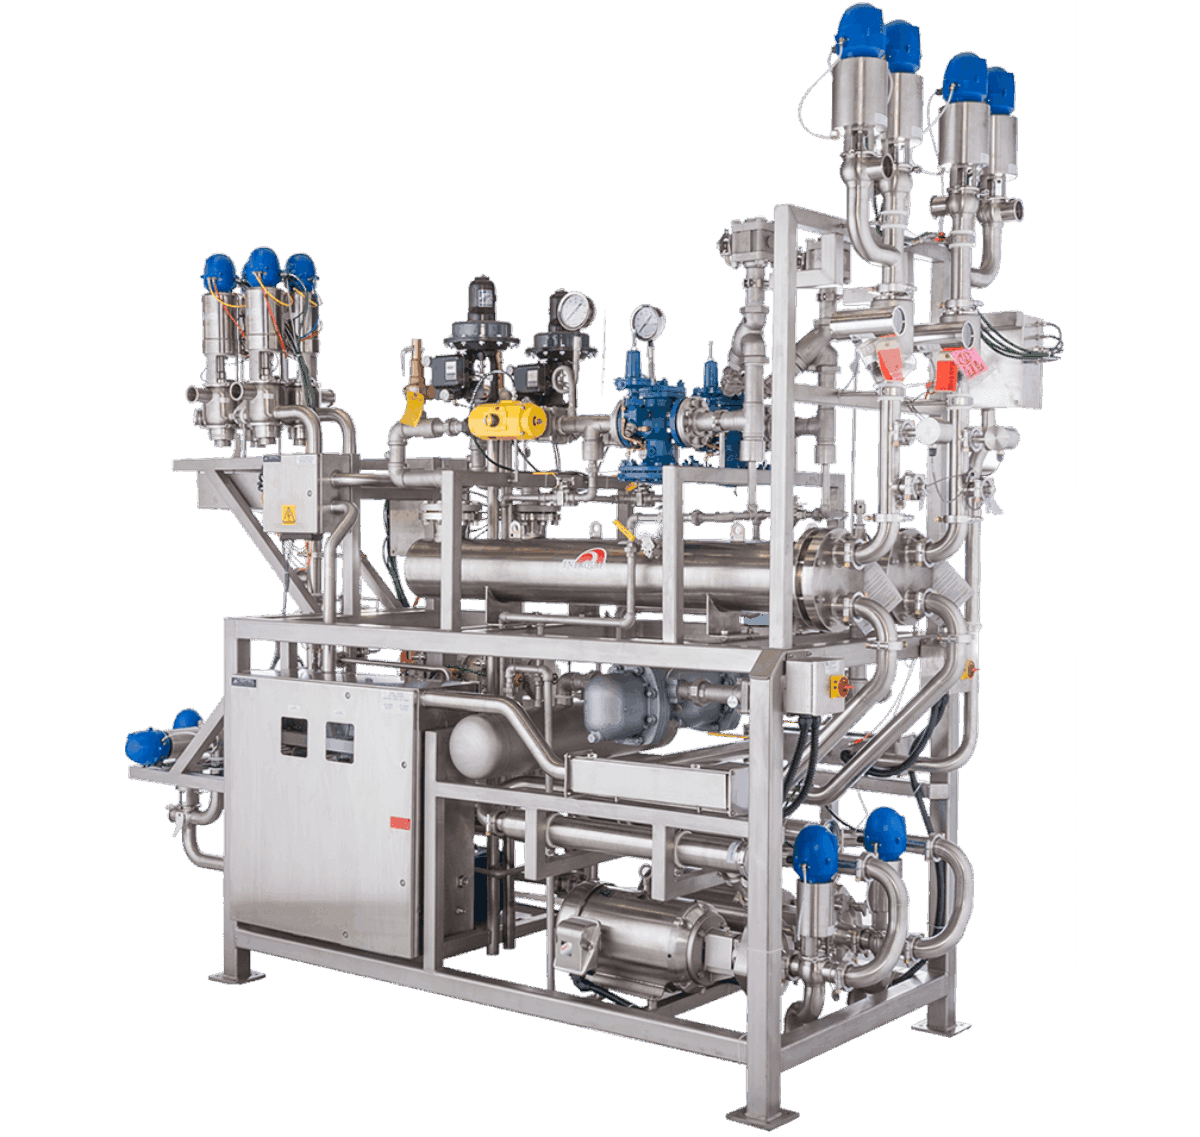 Process Skid Systems